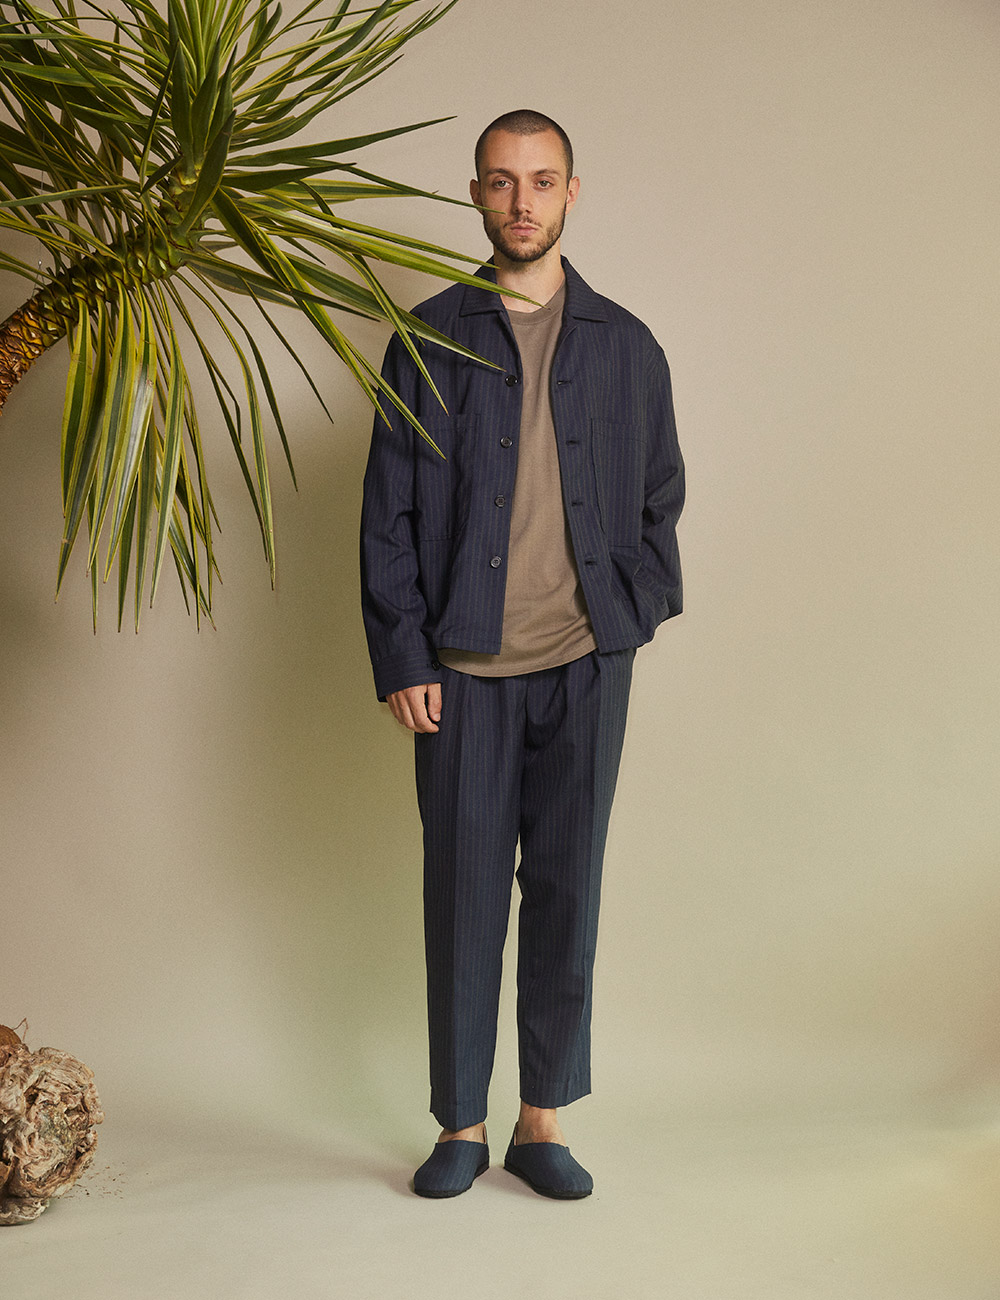 MARKAWARE 2021 SPRING/SUMMER LOOKBOOK